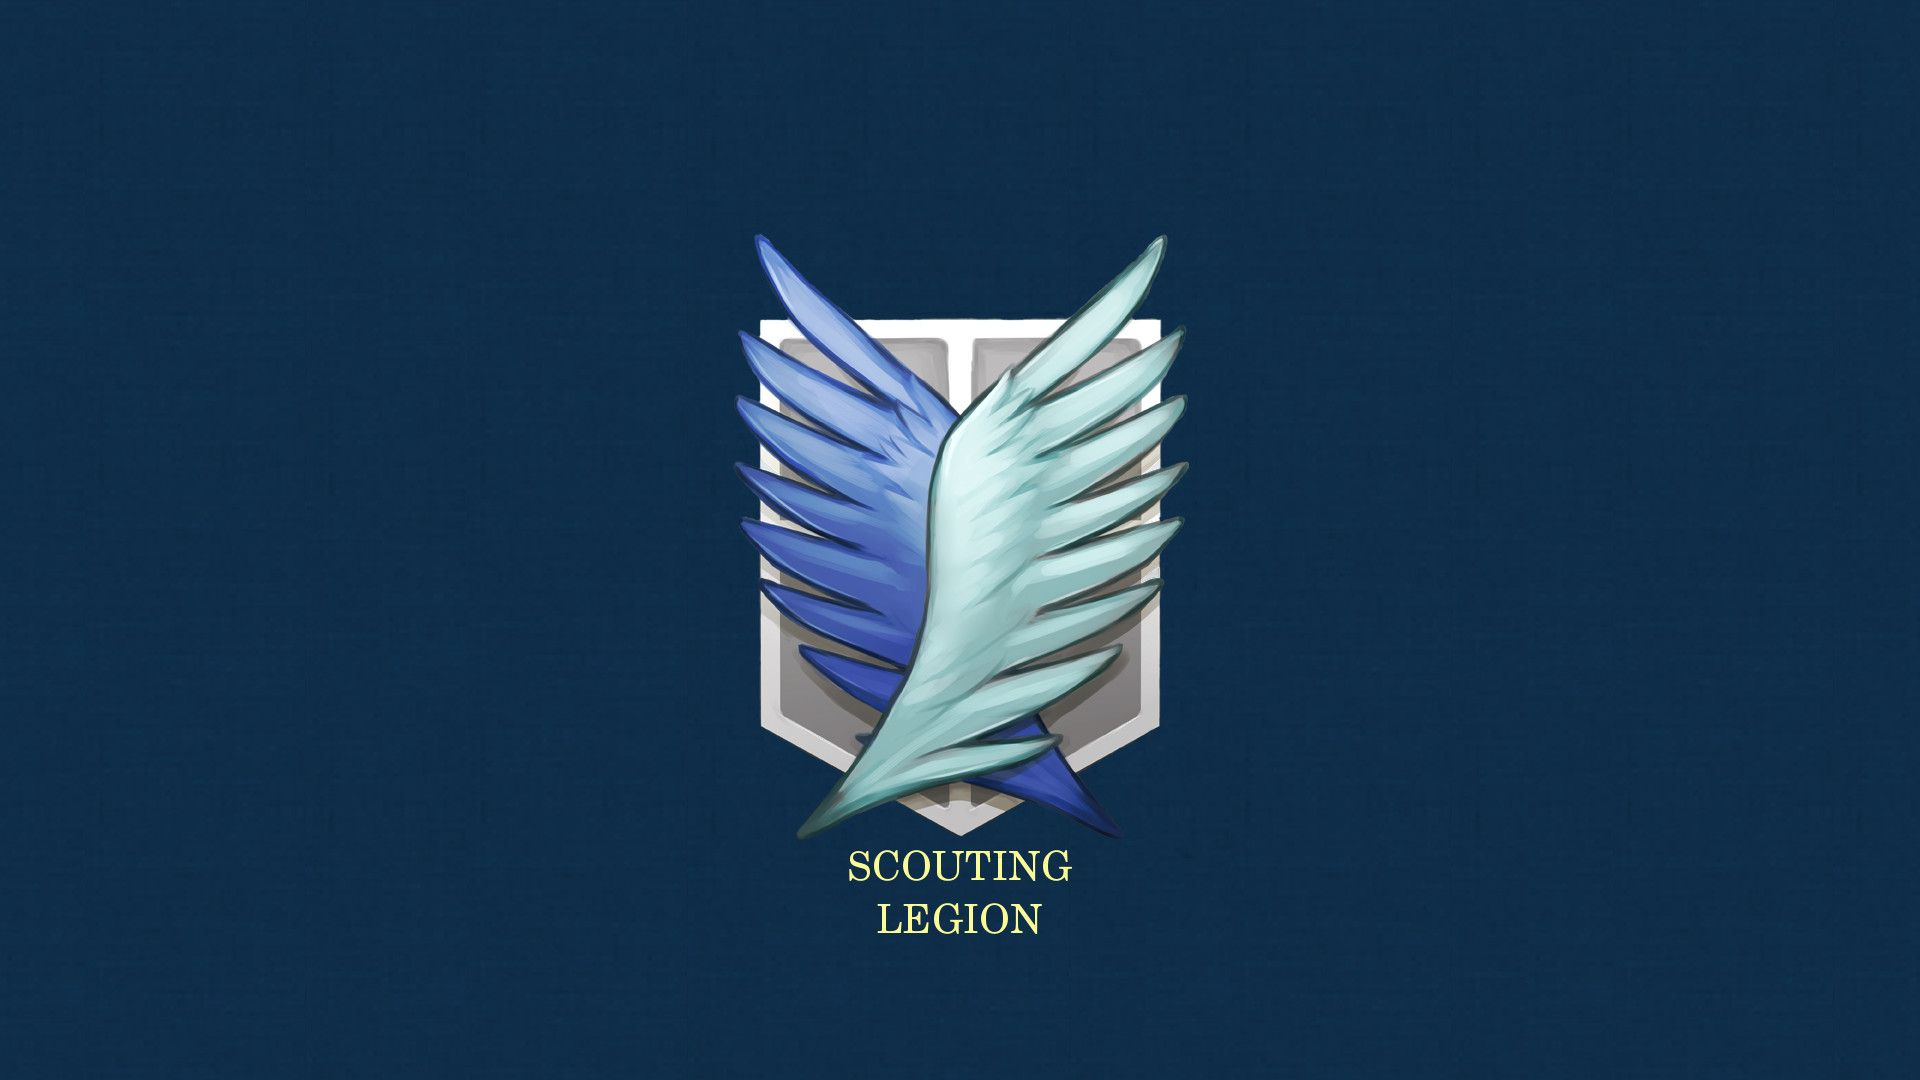 Scouting Legion Wallpapers Top Free Scouting Legion Backgrounds Wallpaperaccess